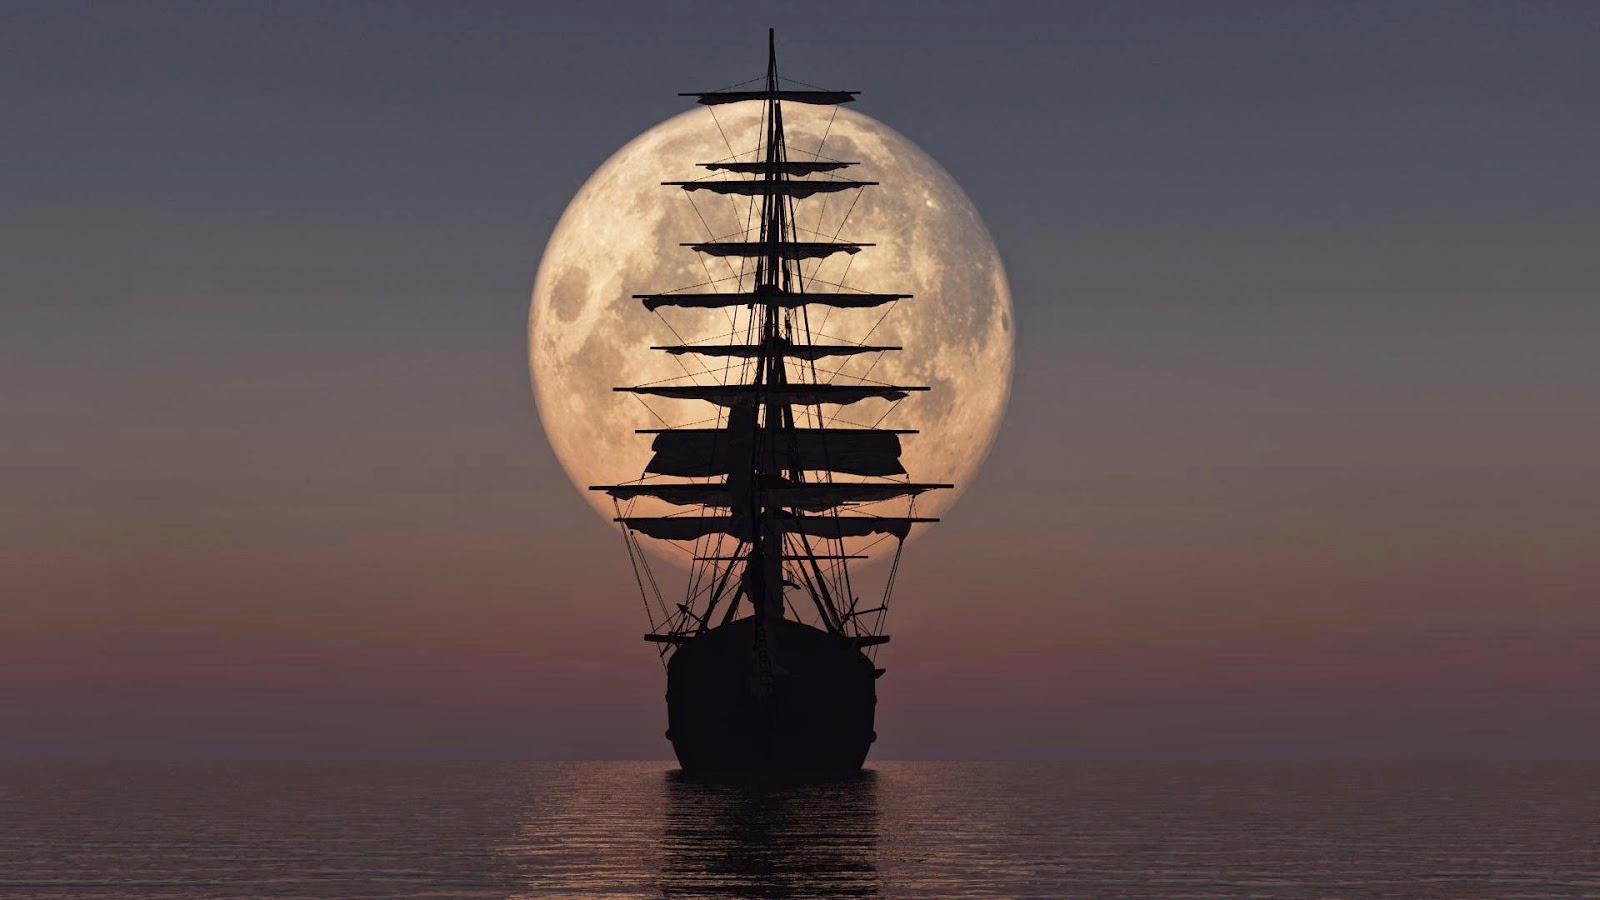 Wallpaper met piratenschip en volle maan